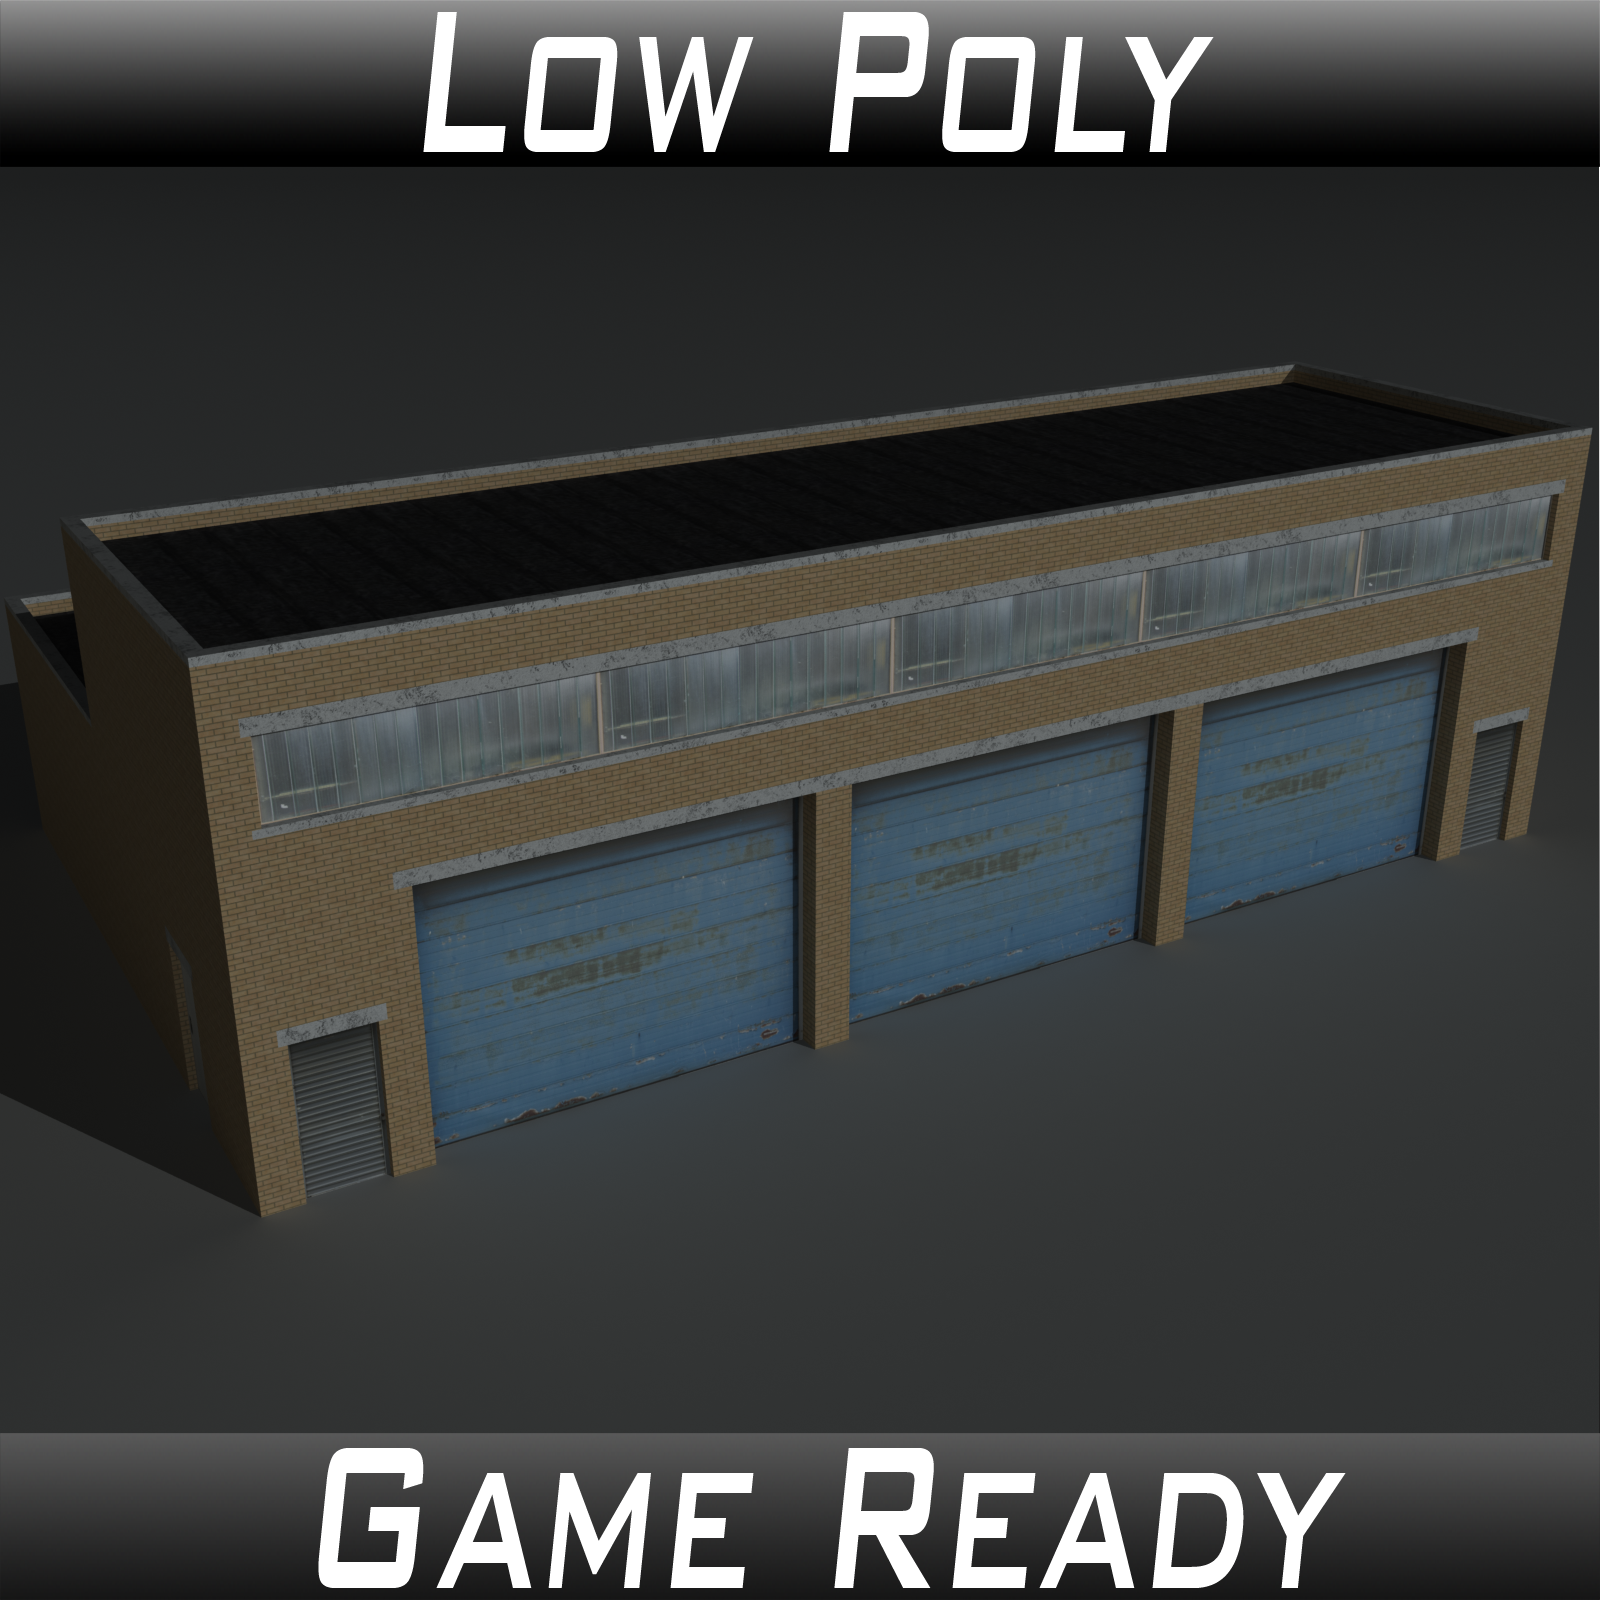 Low Poly Factory Building 11 - Extended Licence by 3dlands